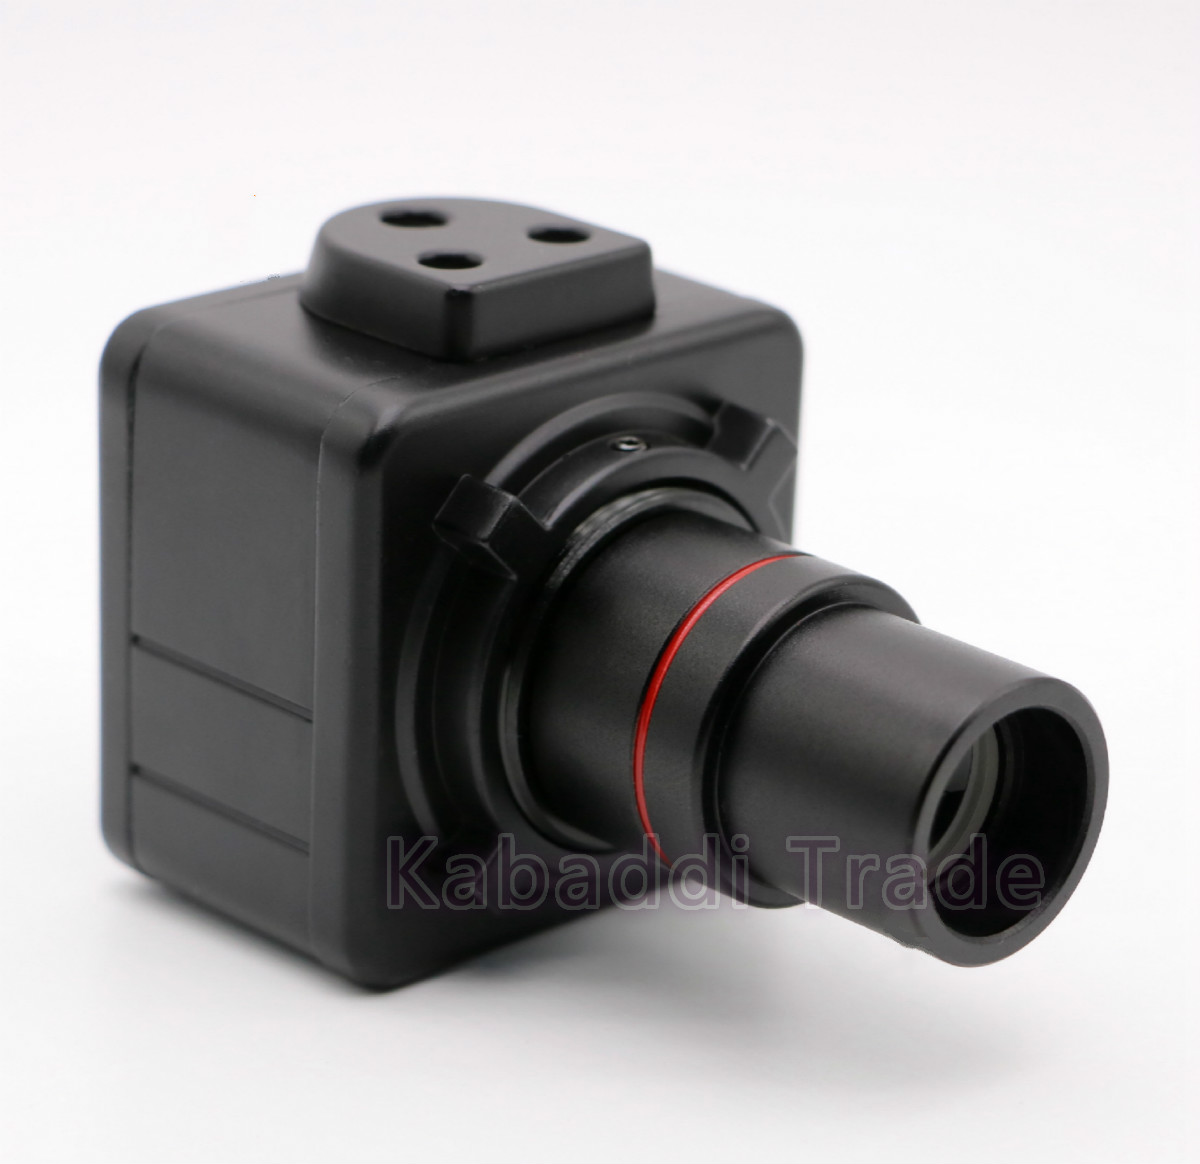 все цены на 5.0MP Biological Stereo microscope Electronic Eyepiece USB Video CMOS Camera Industrial Digital Image Capture with 0.5X C-Mount